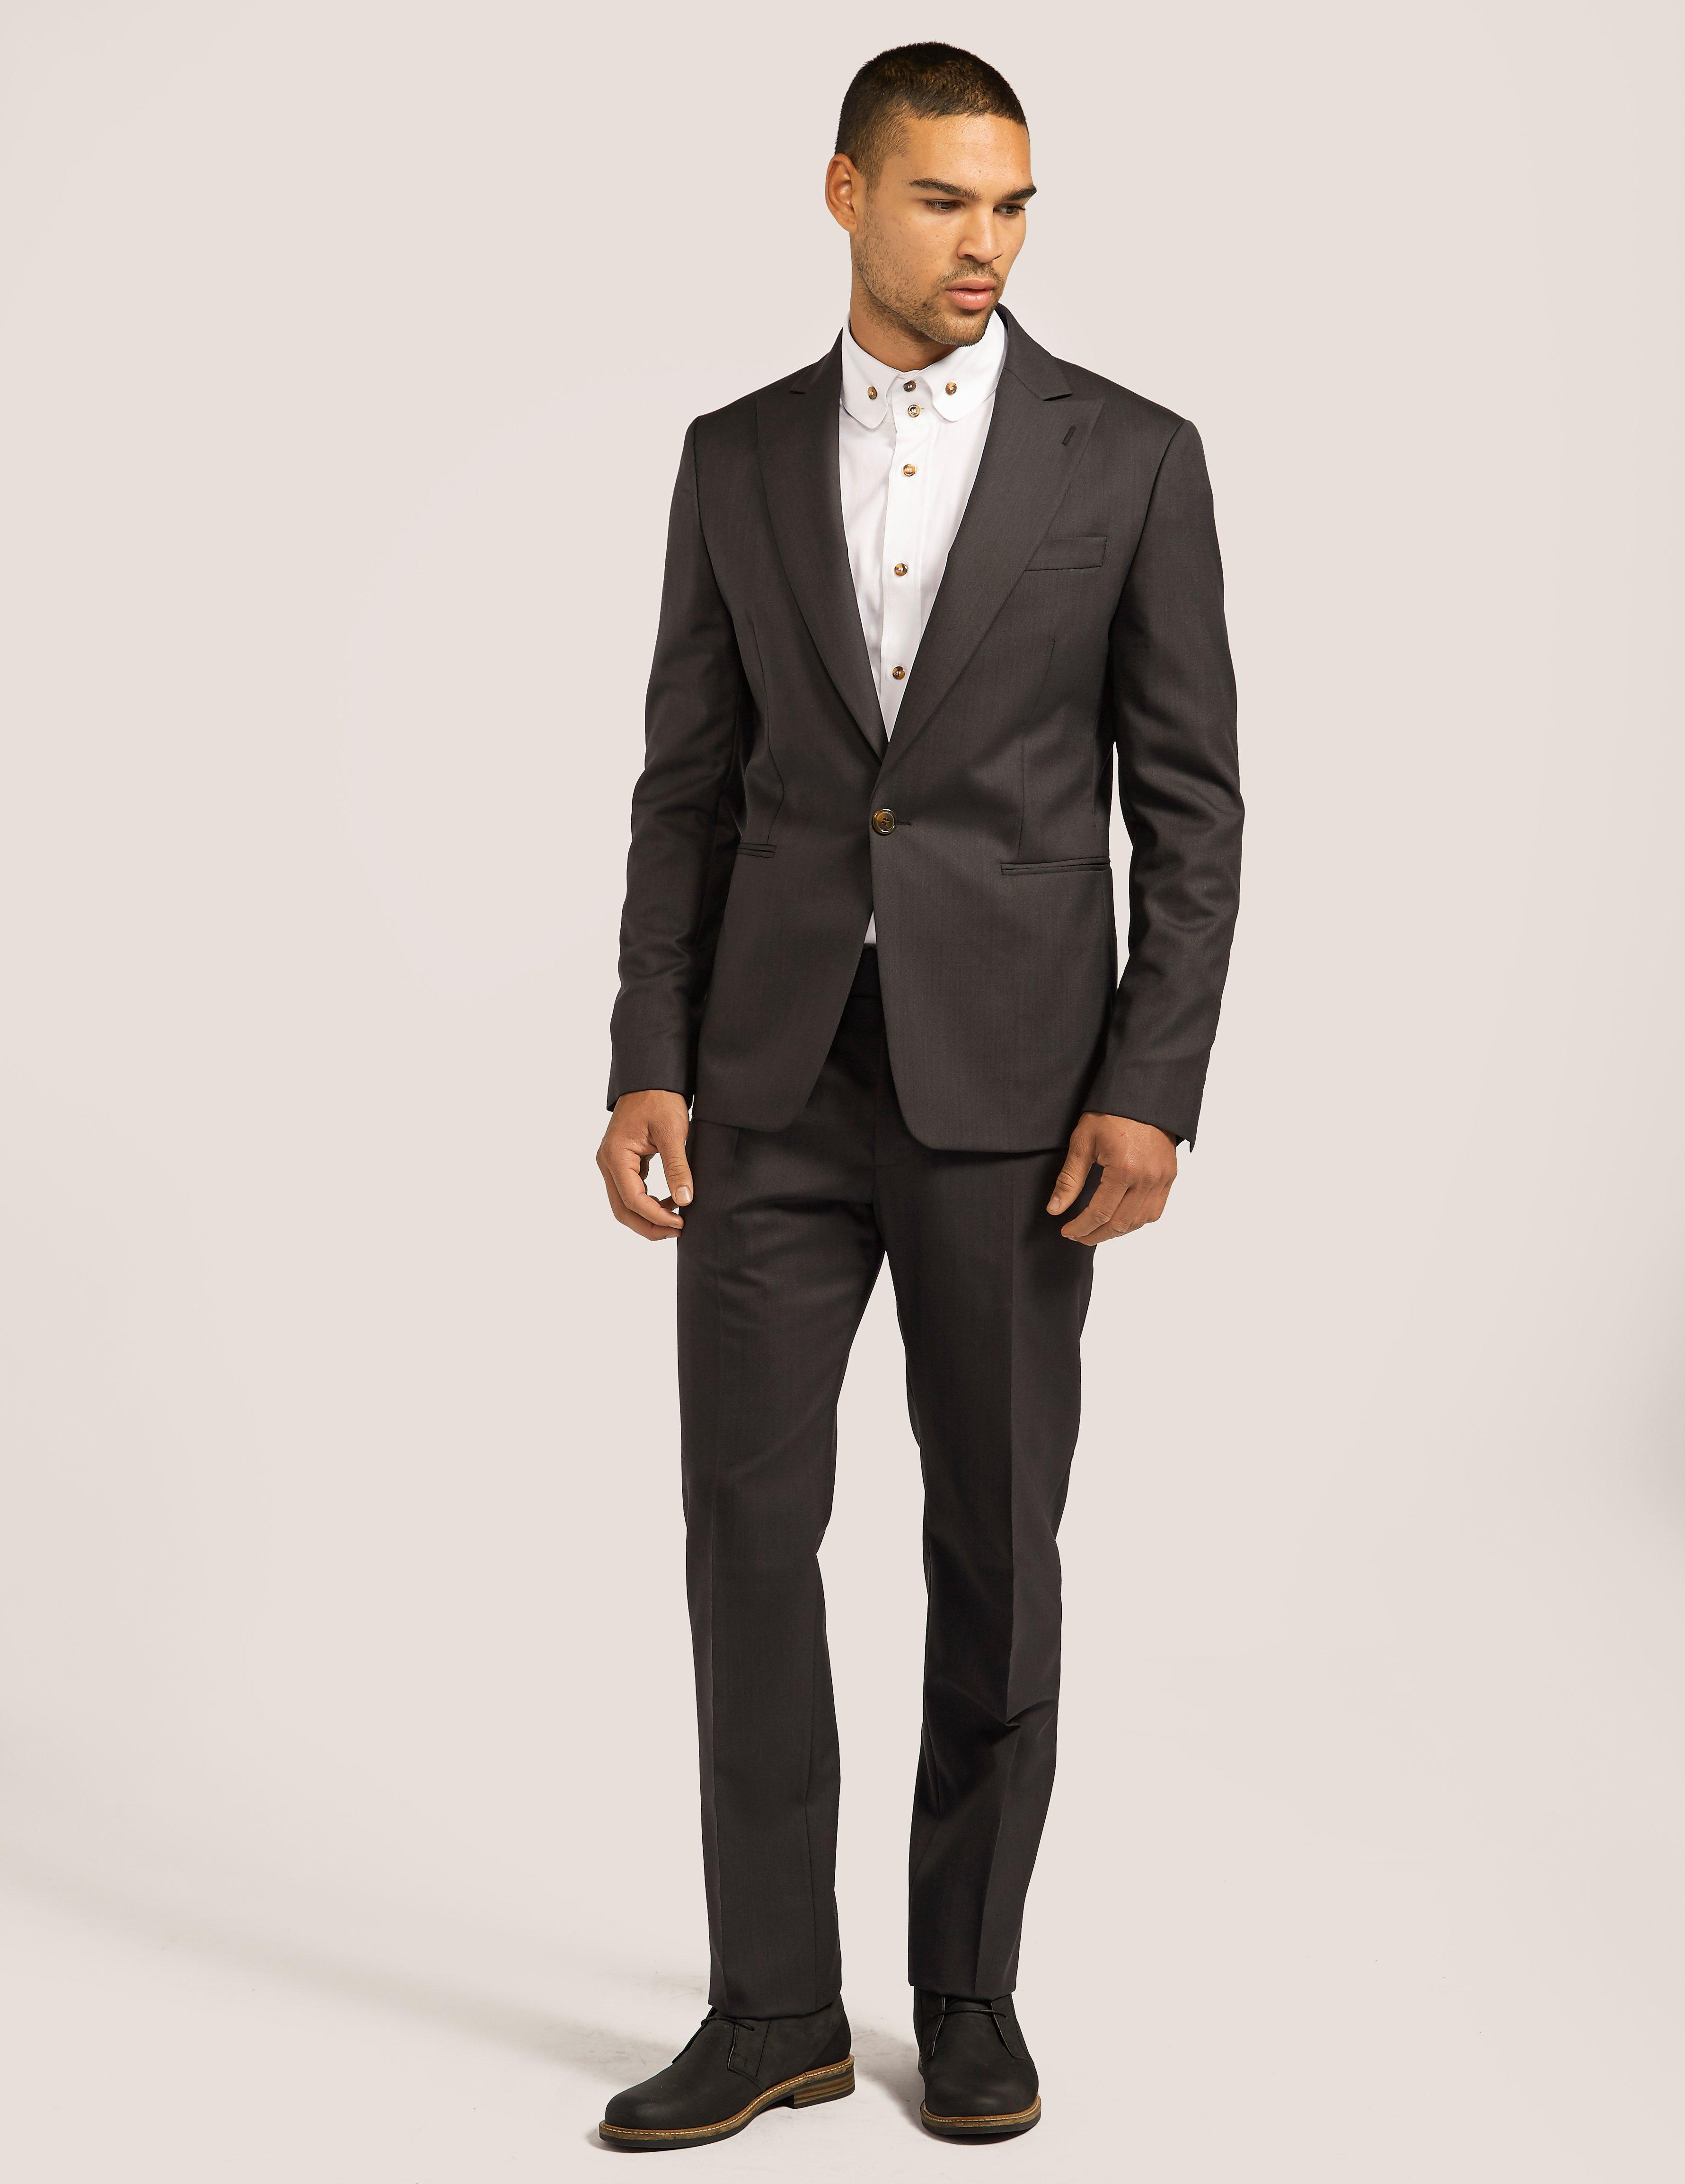 black single men in westwood Vivienne westwood rebellious, irreverent and provocative, vivienne westwood has been revolutionising the sartorial status quo since 1971 discover our collection of vivienne westwood men's , women's and bags today.